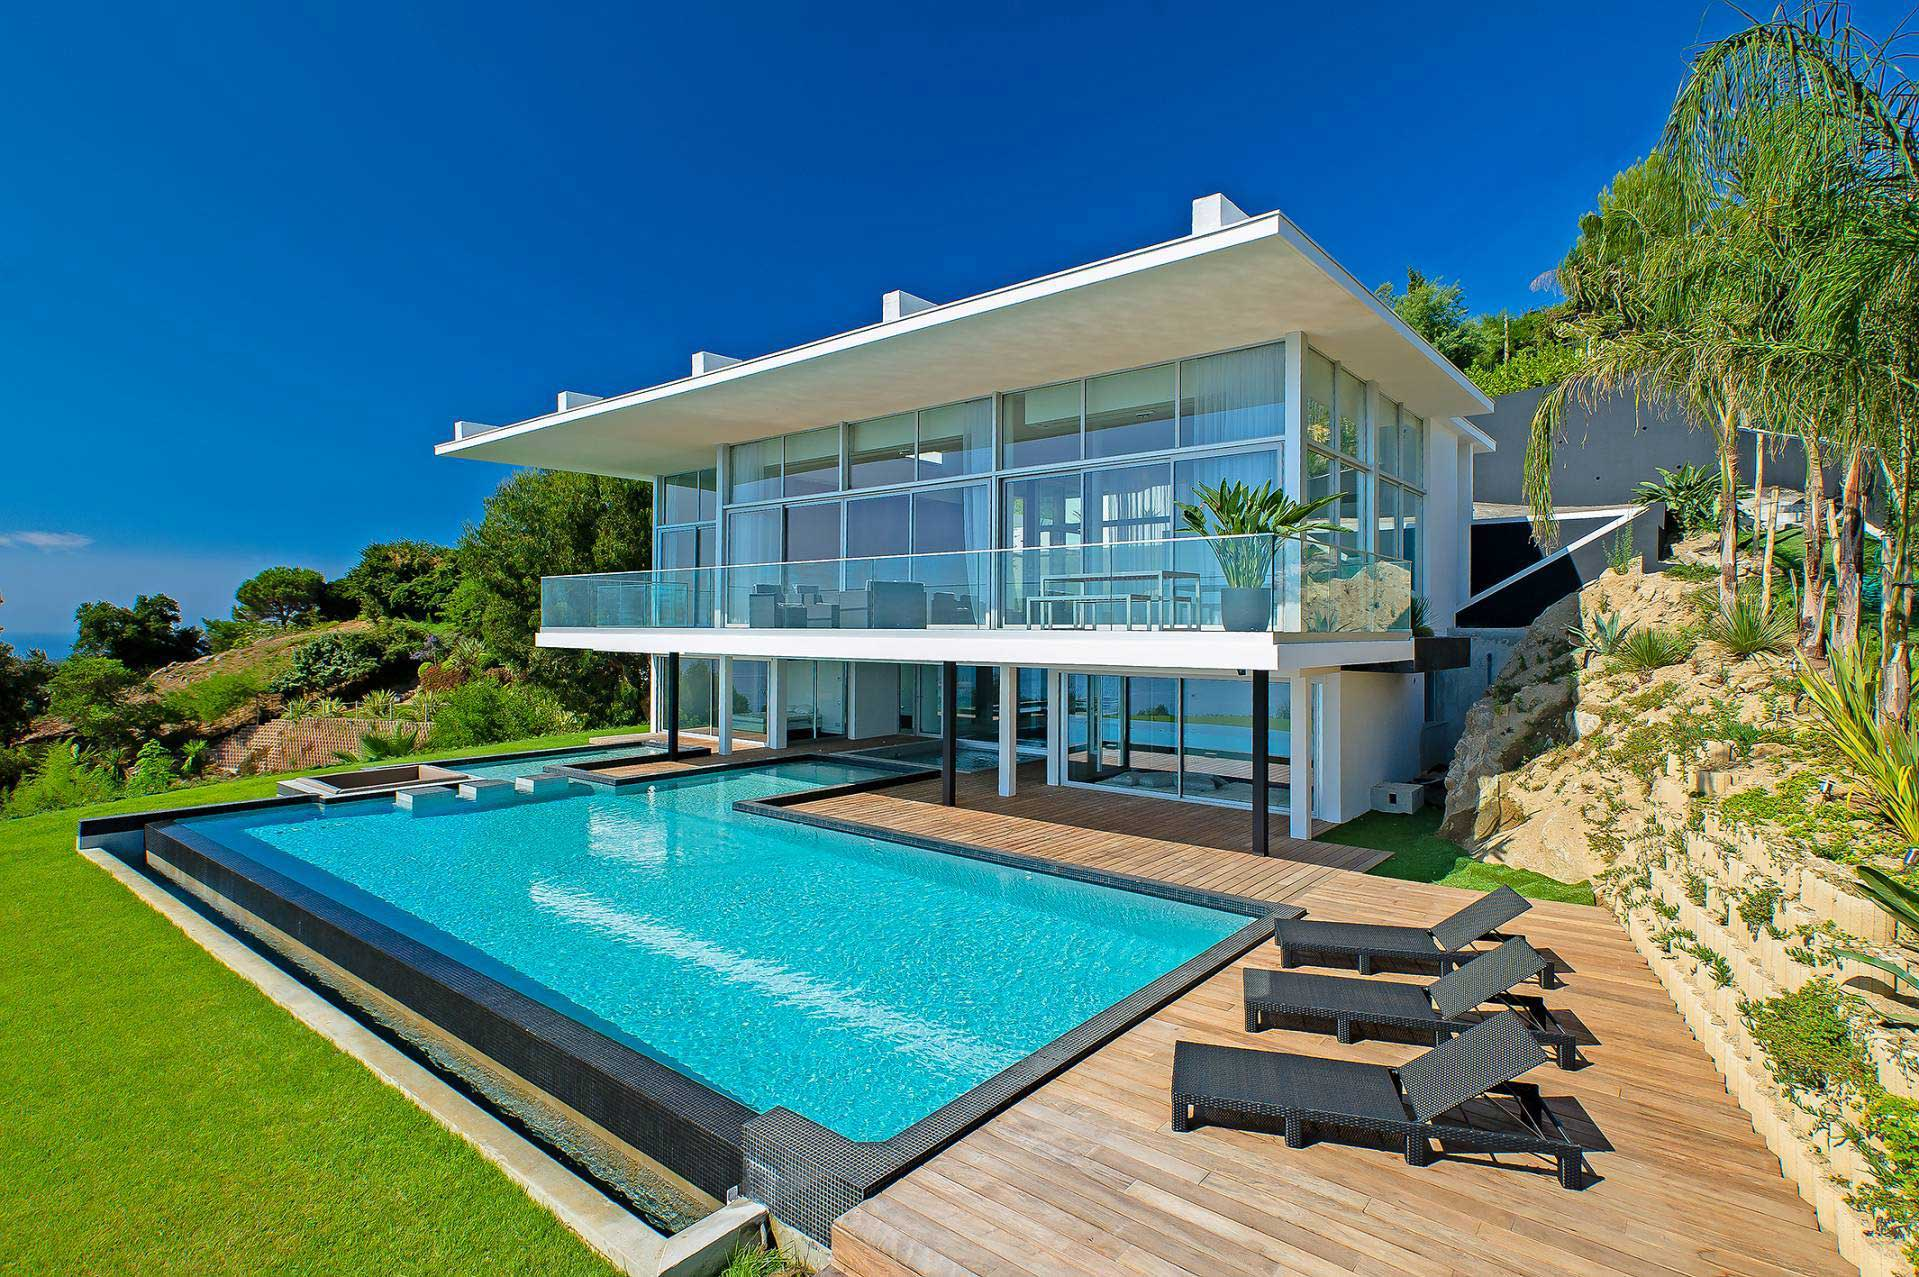 Villa contemporaine avec piscine saint tropez for Petite villa design